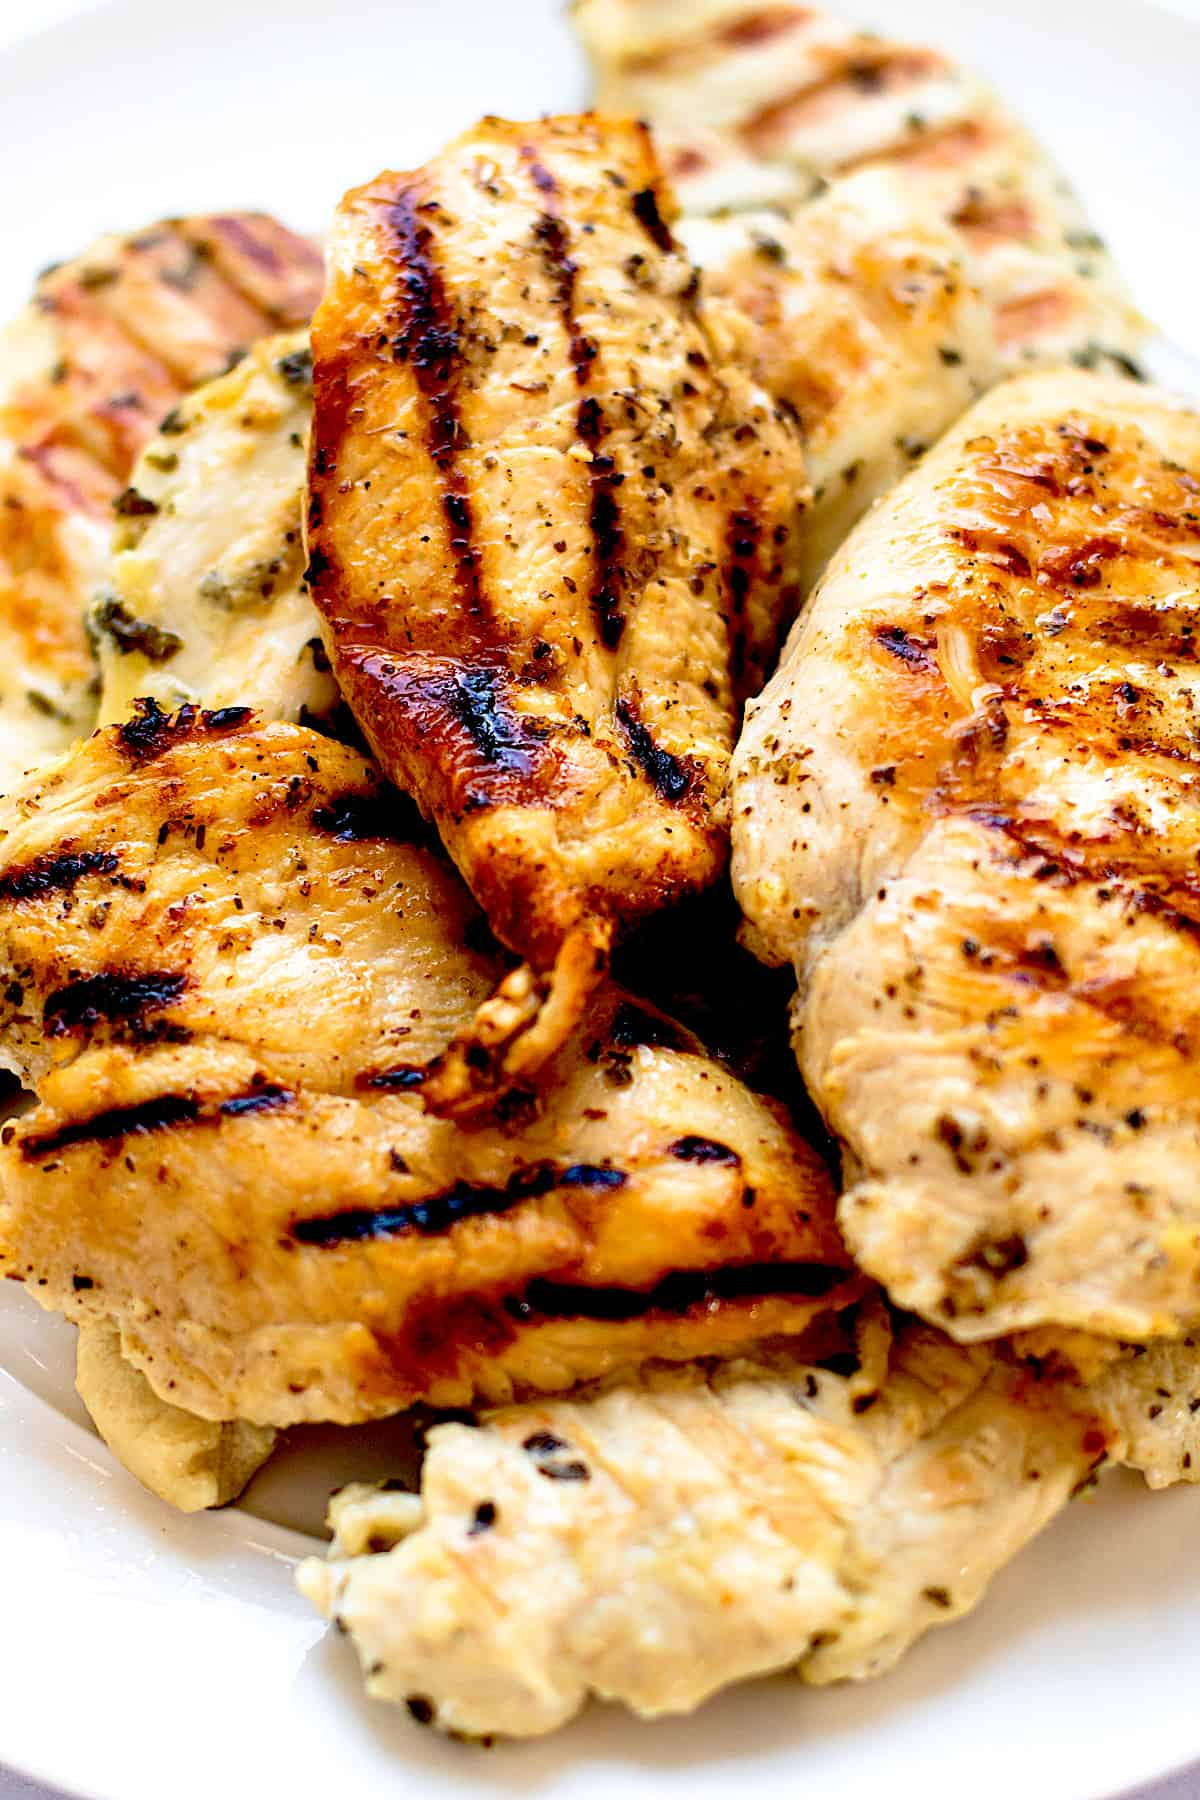 Grilled marinated chicken.